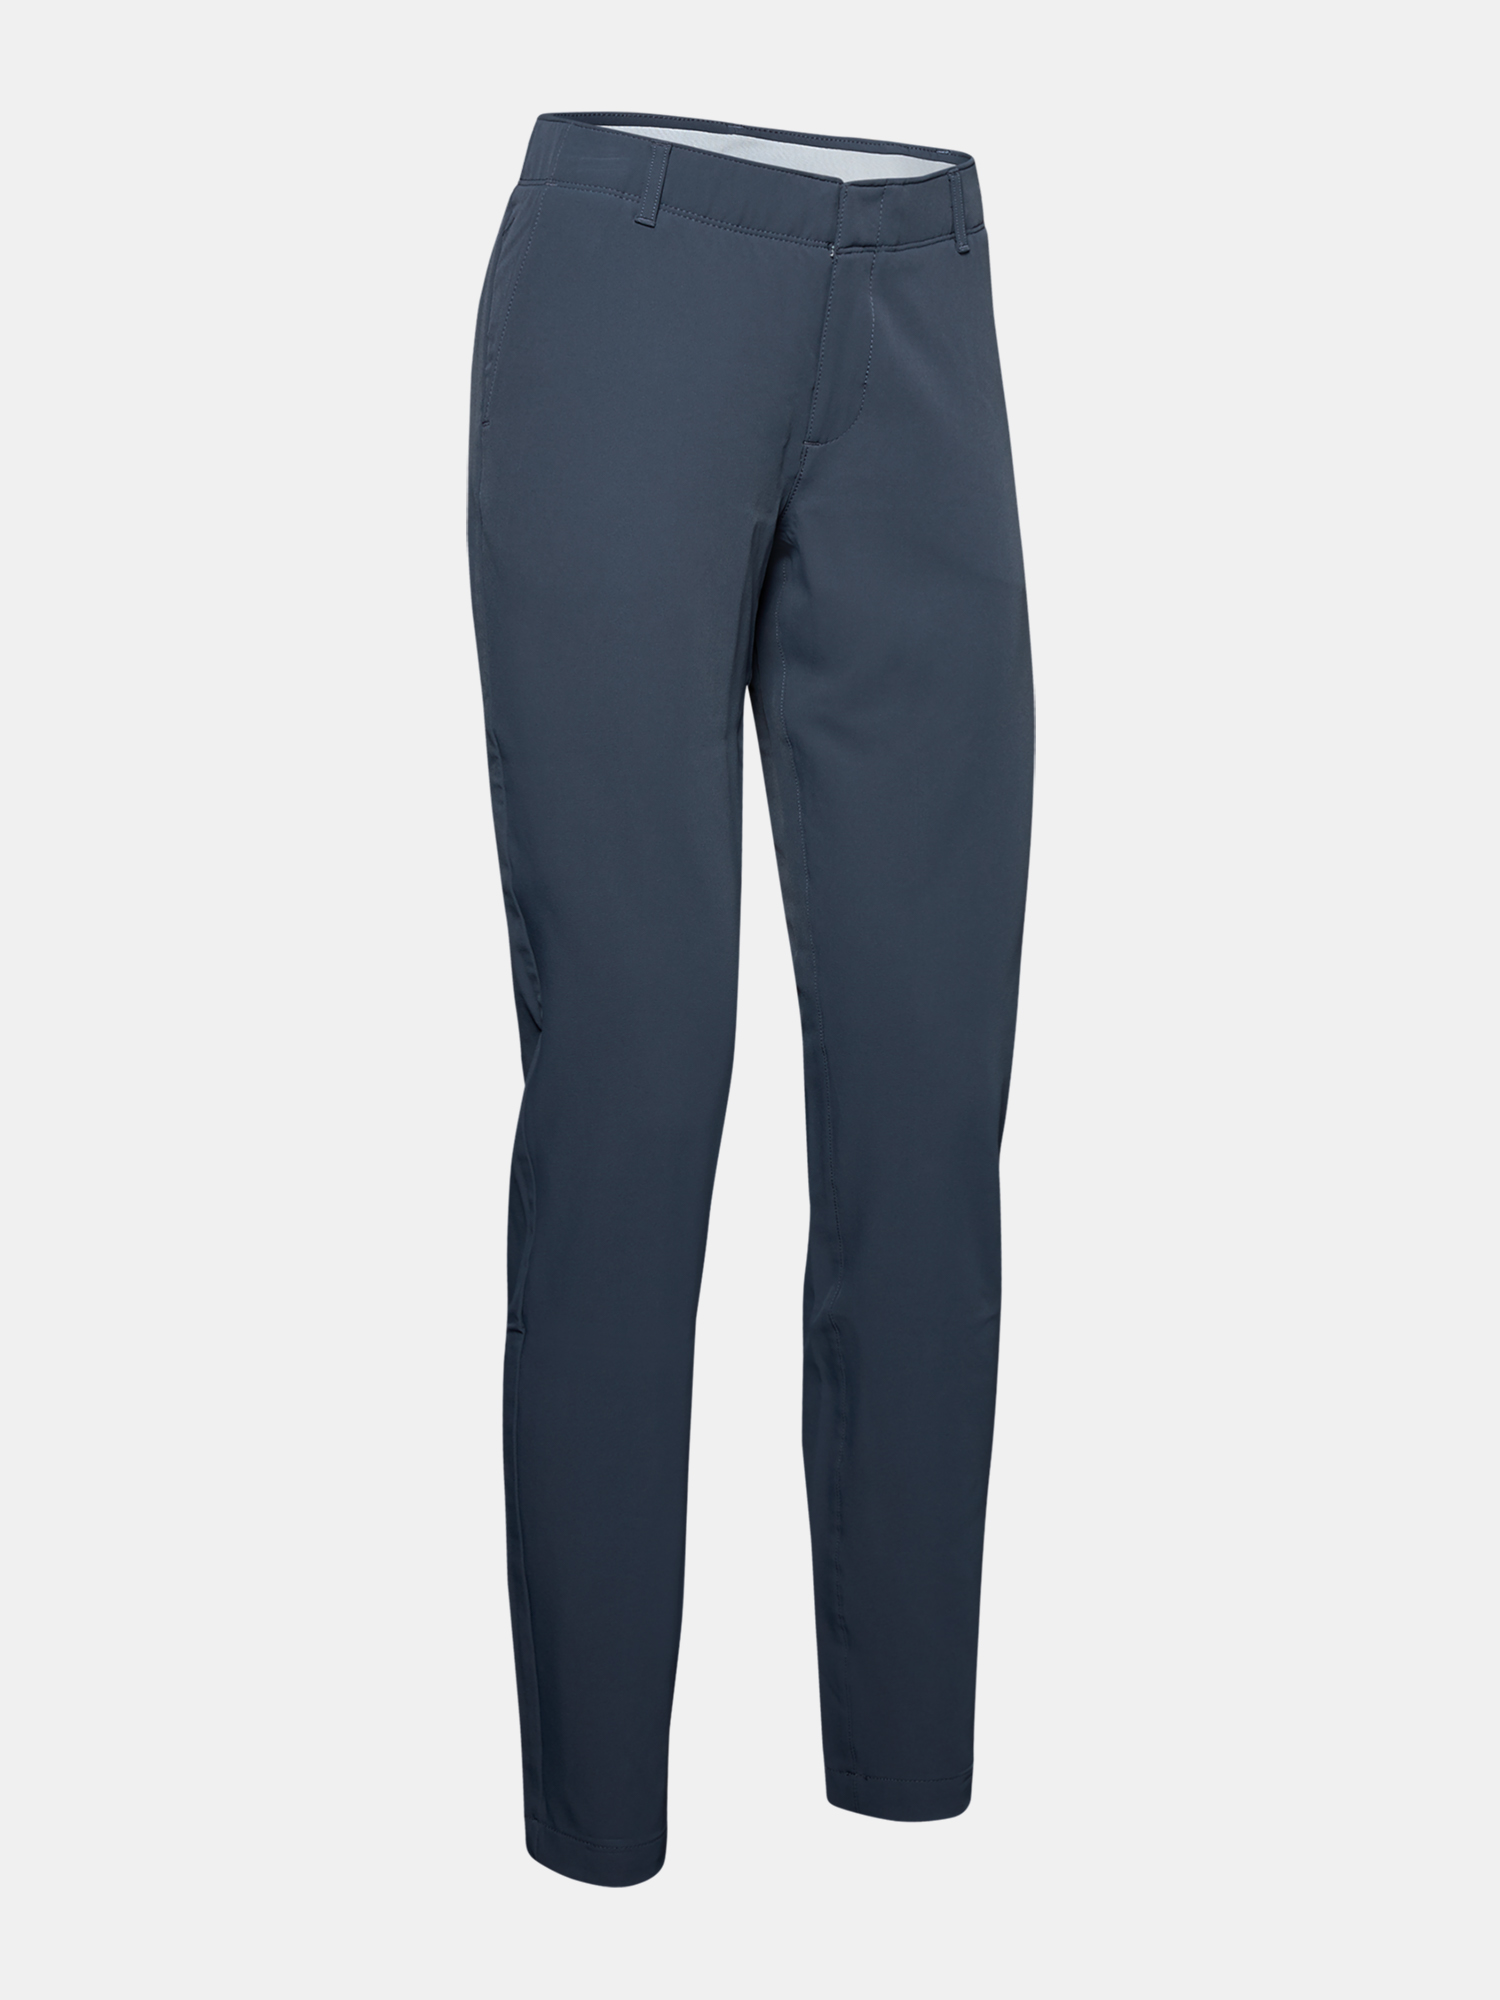 Kalhoty Under Armour Links Pant-GRY (3)